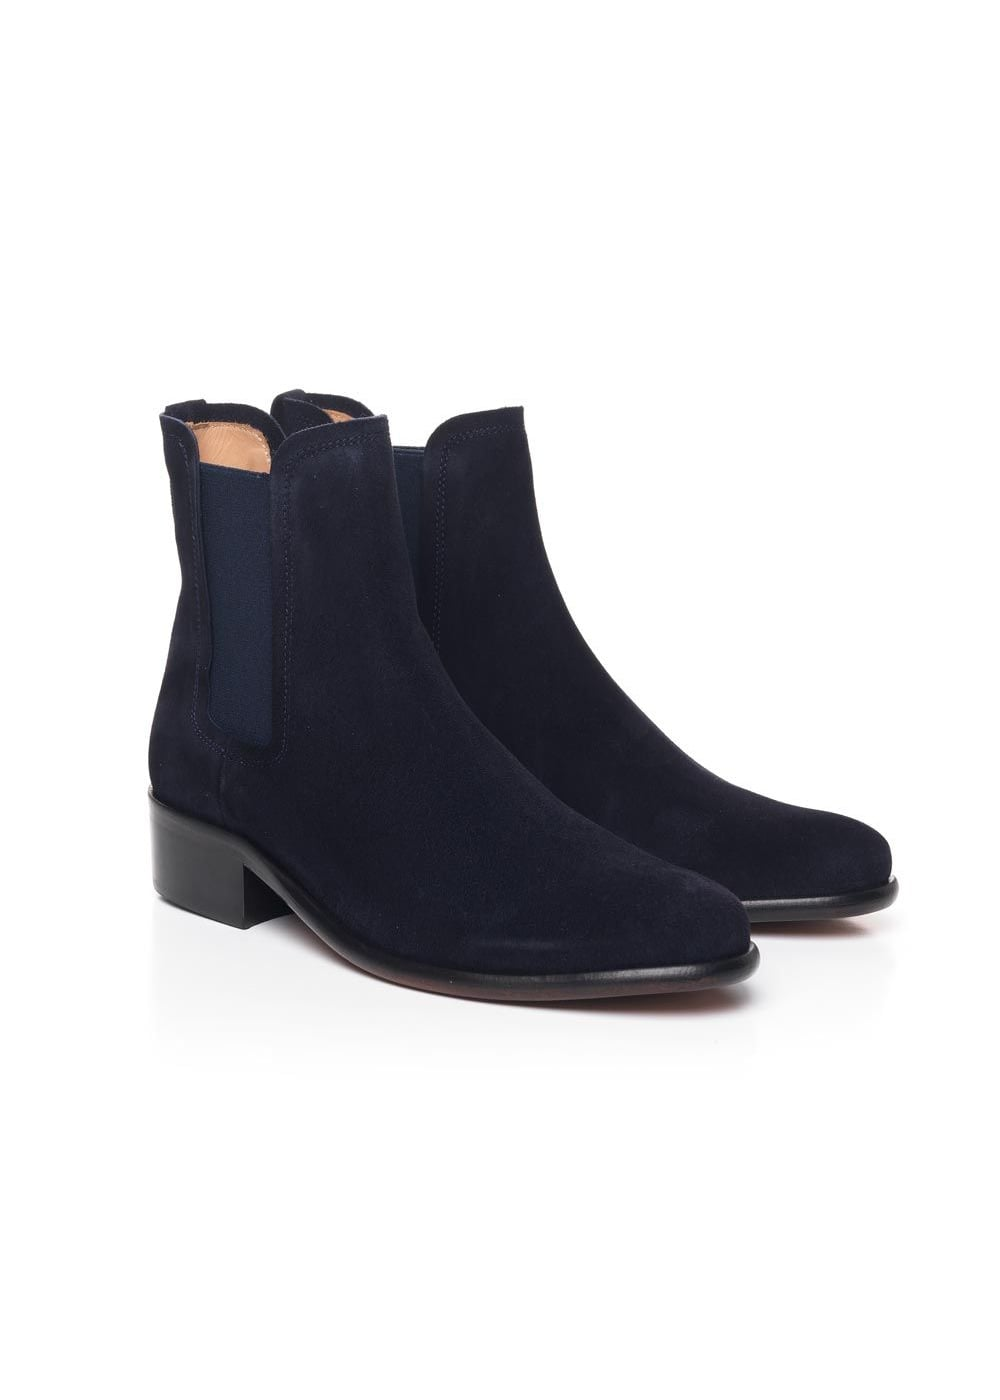 Fairfax and Favor Chelsea Boots  Large Image